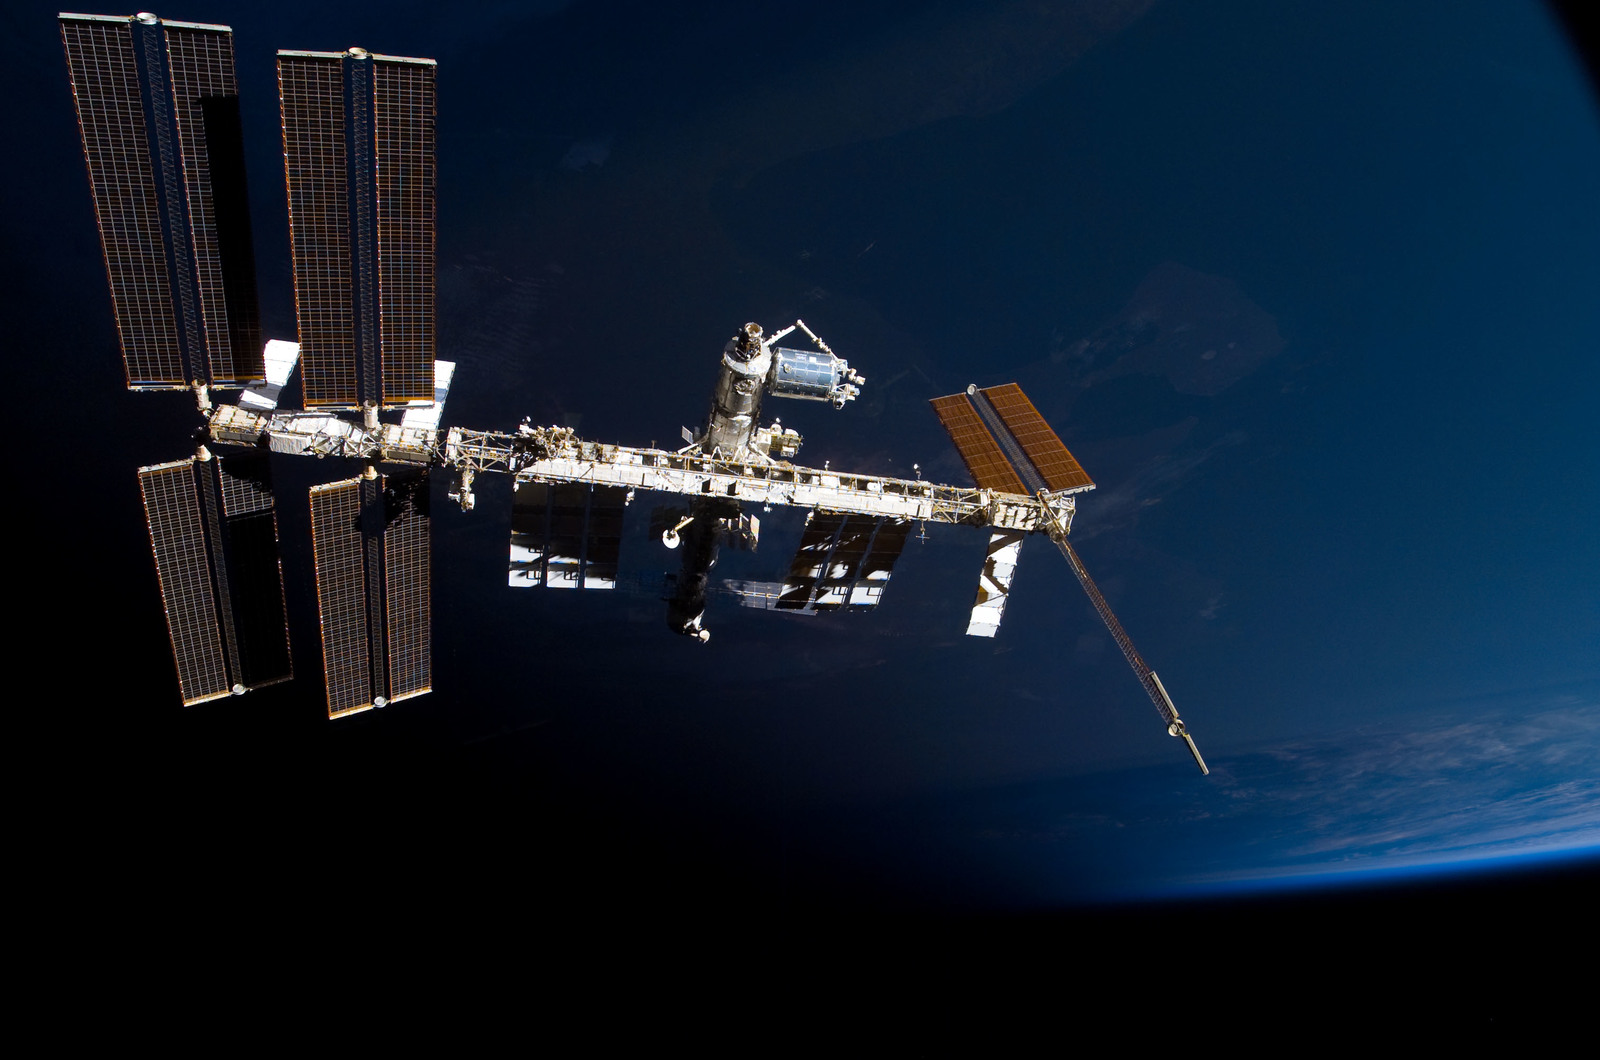 S122E009875 - STS-122 - View of ISS after STS-122 Undocking